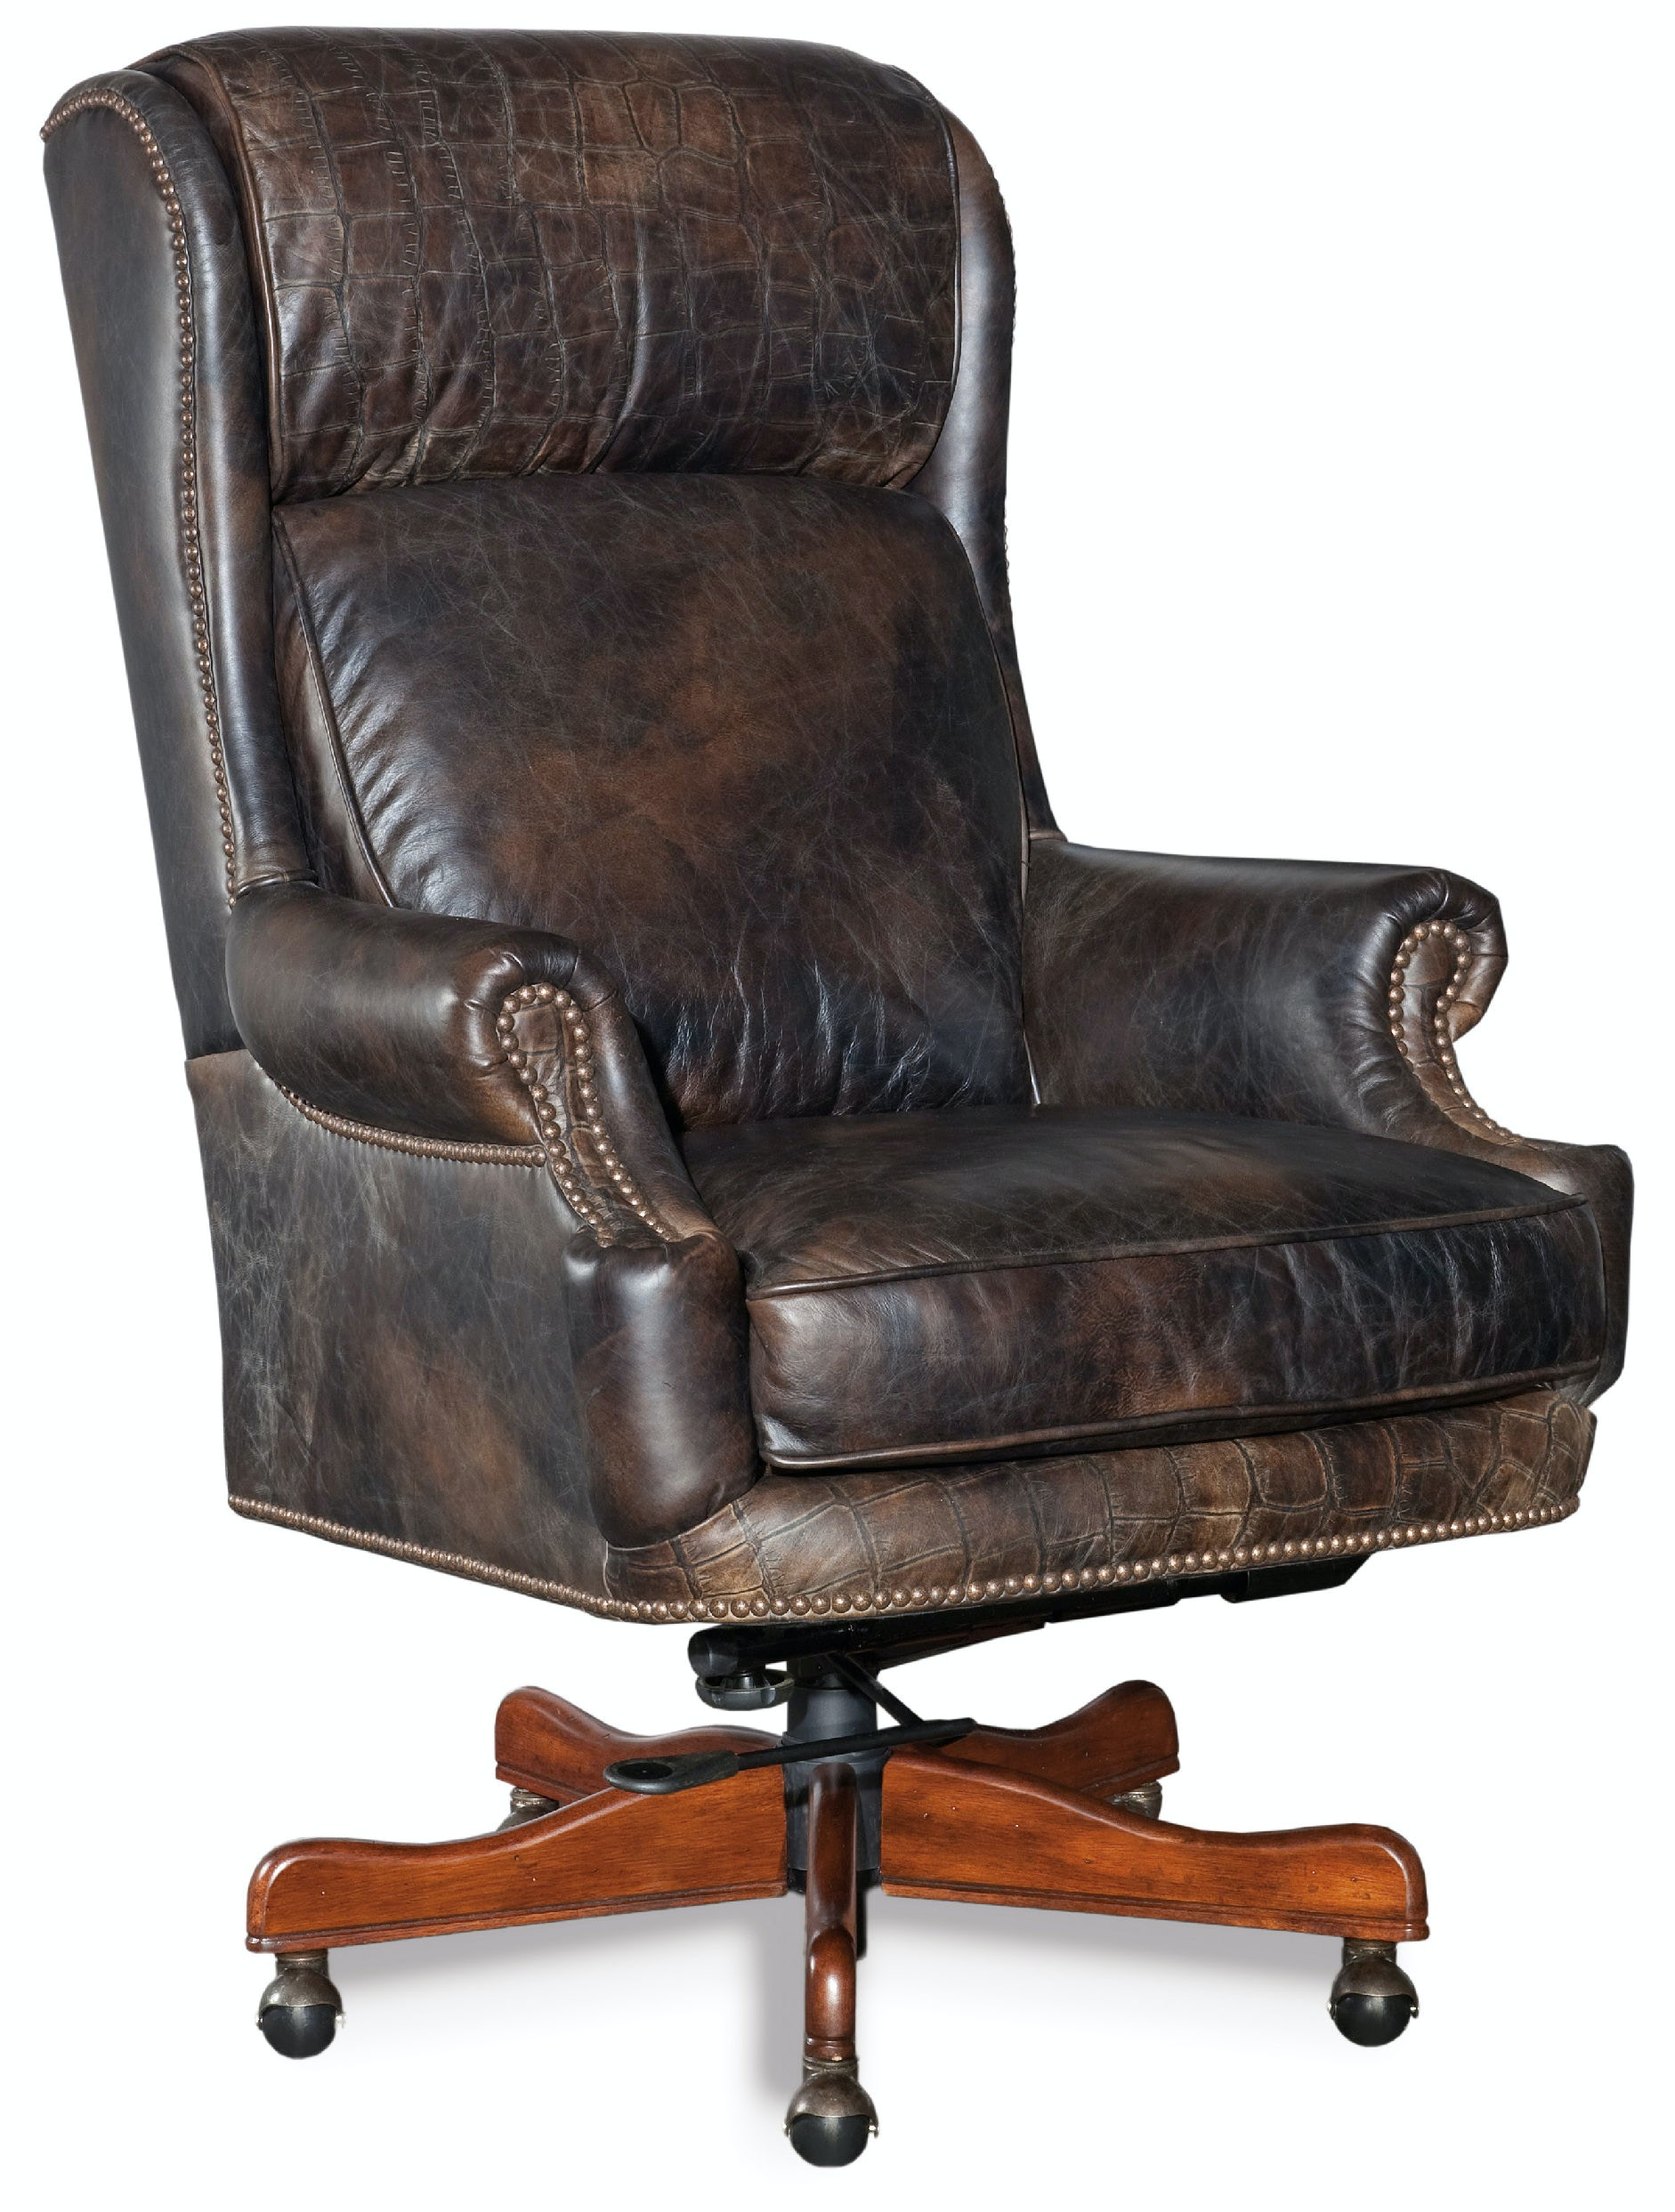 Tucker Executive Swivel Tilt Chair EC378-089